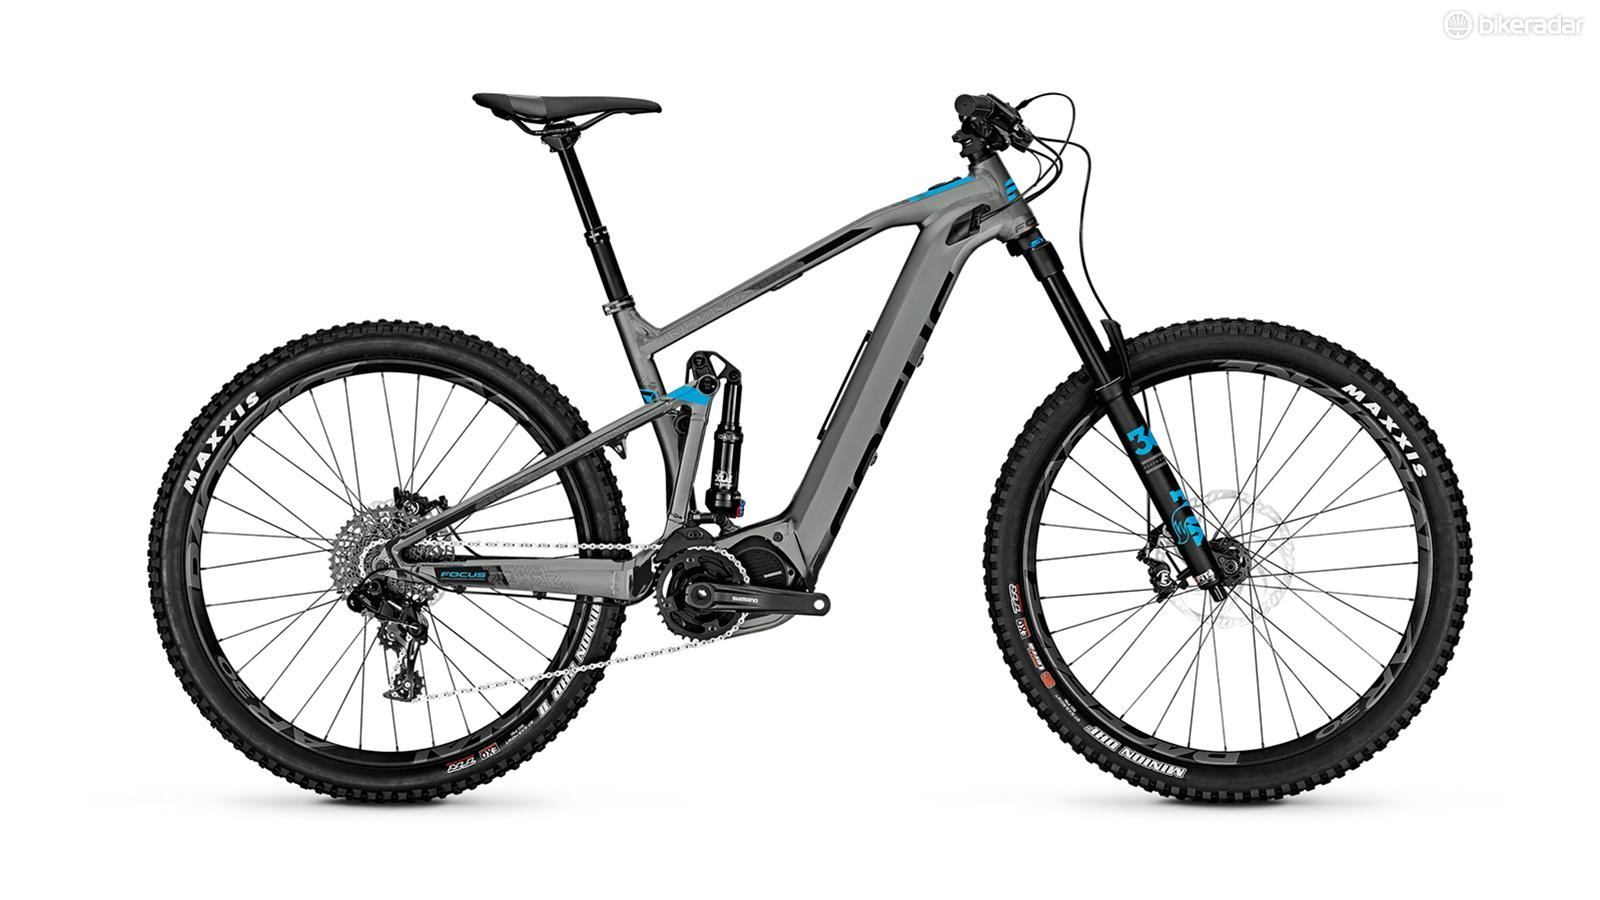 The mid-price Sam2 model saves over £2,000 over the Pro model